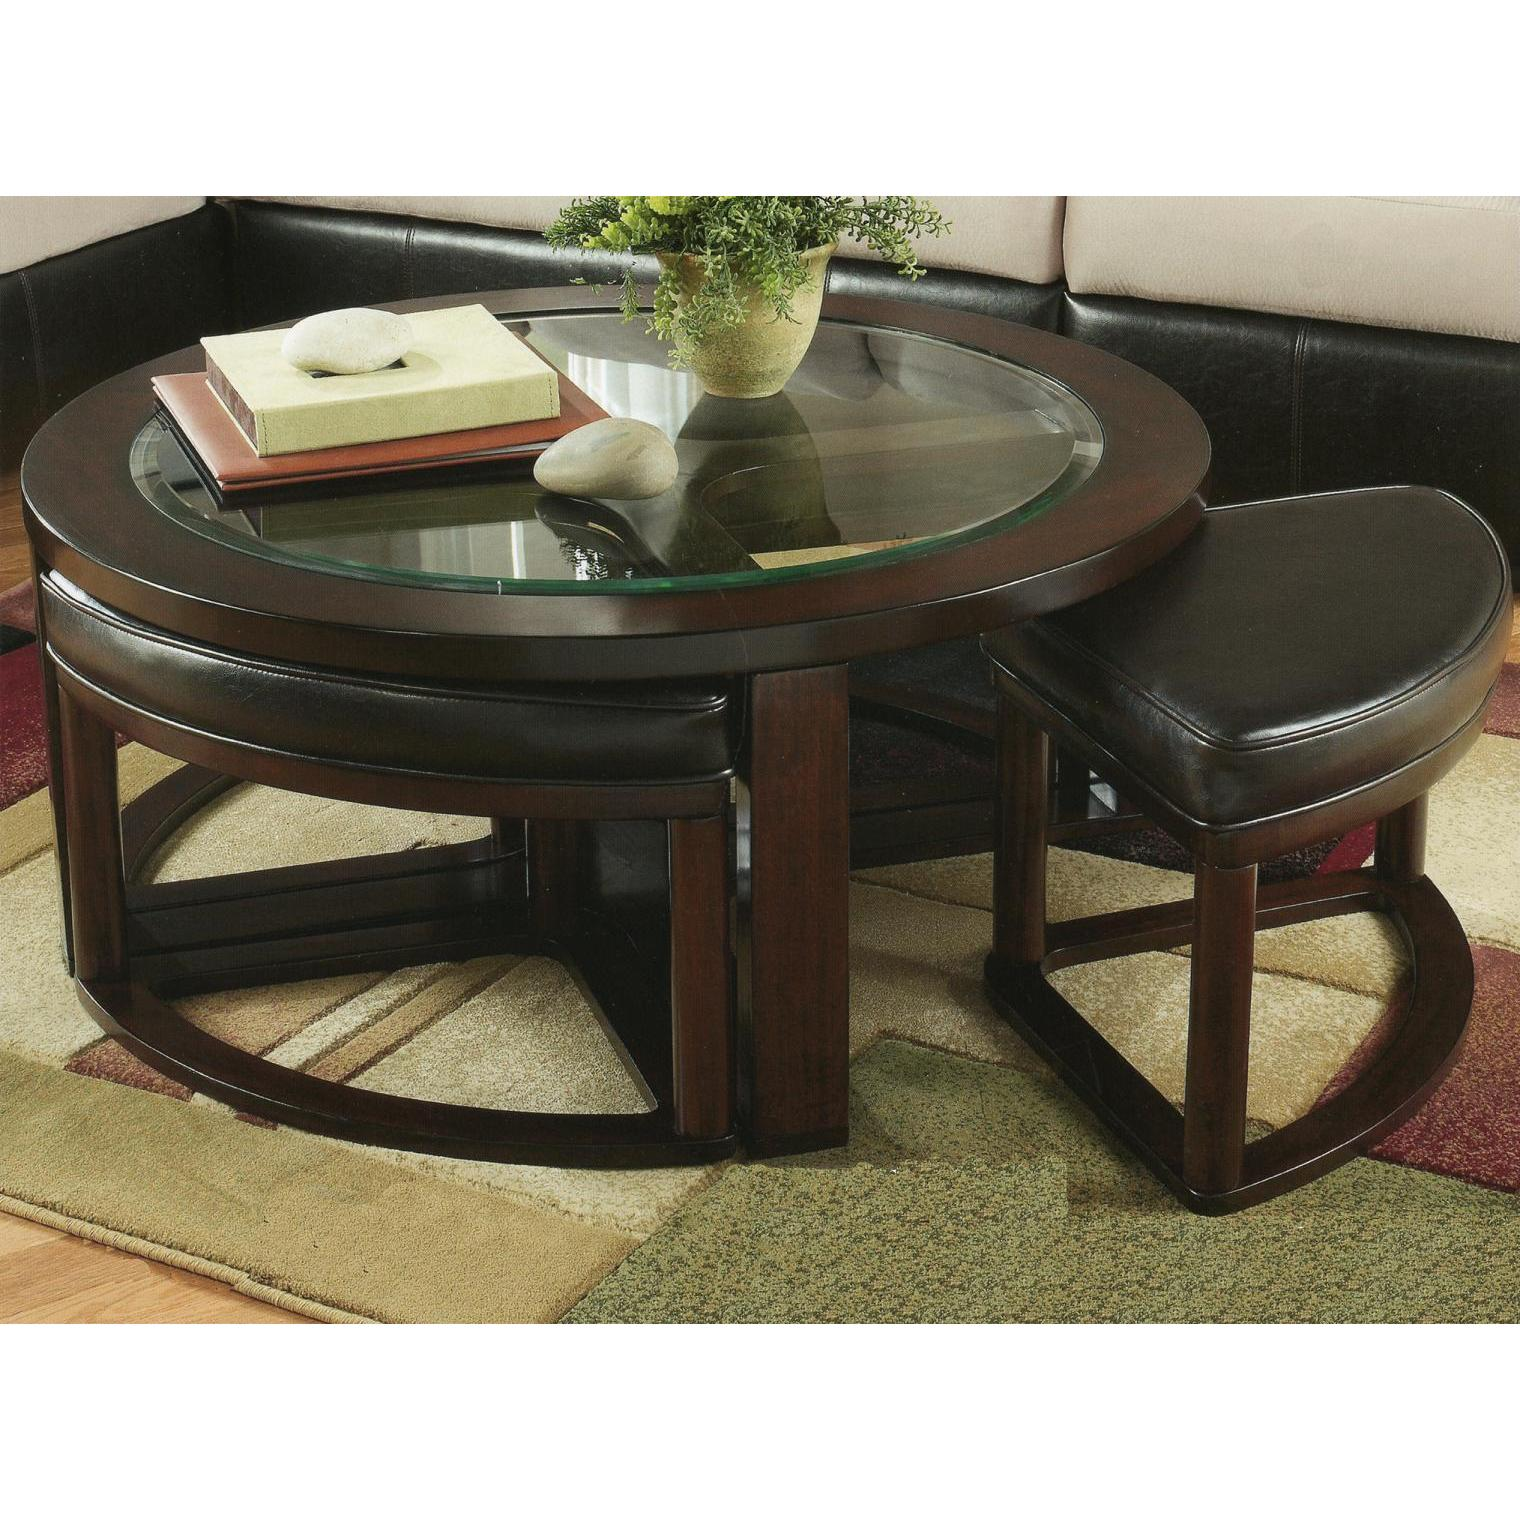 Cylina Solid Wood Glass Top Round Coffee Table With 4